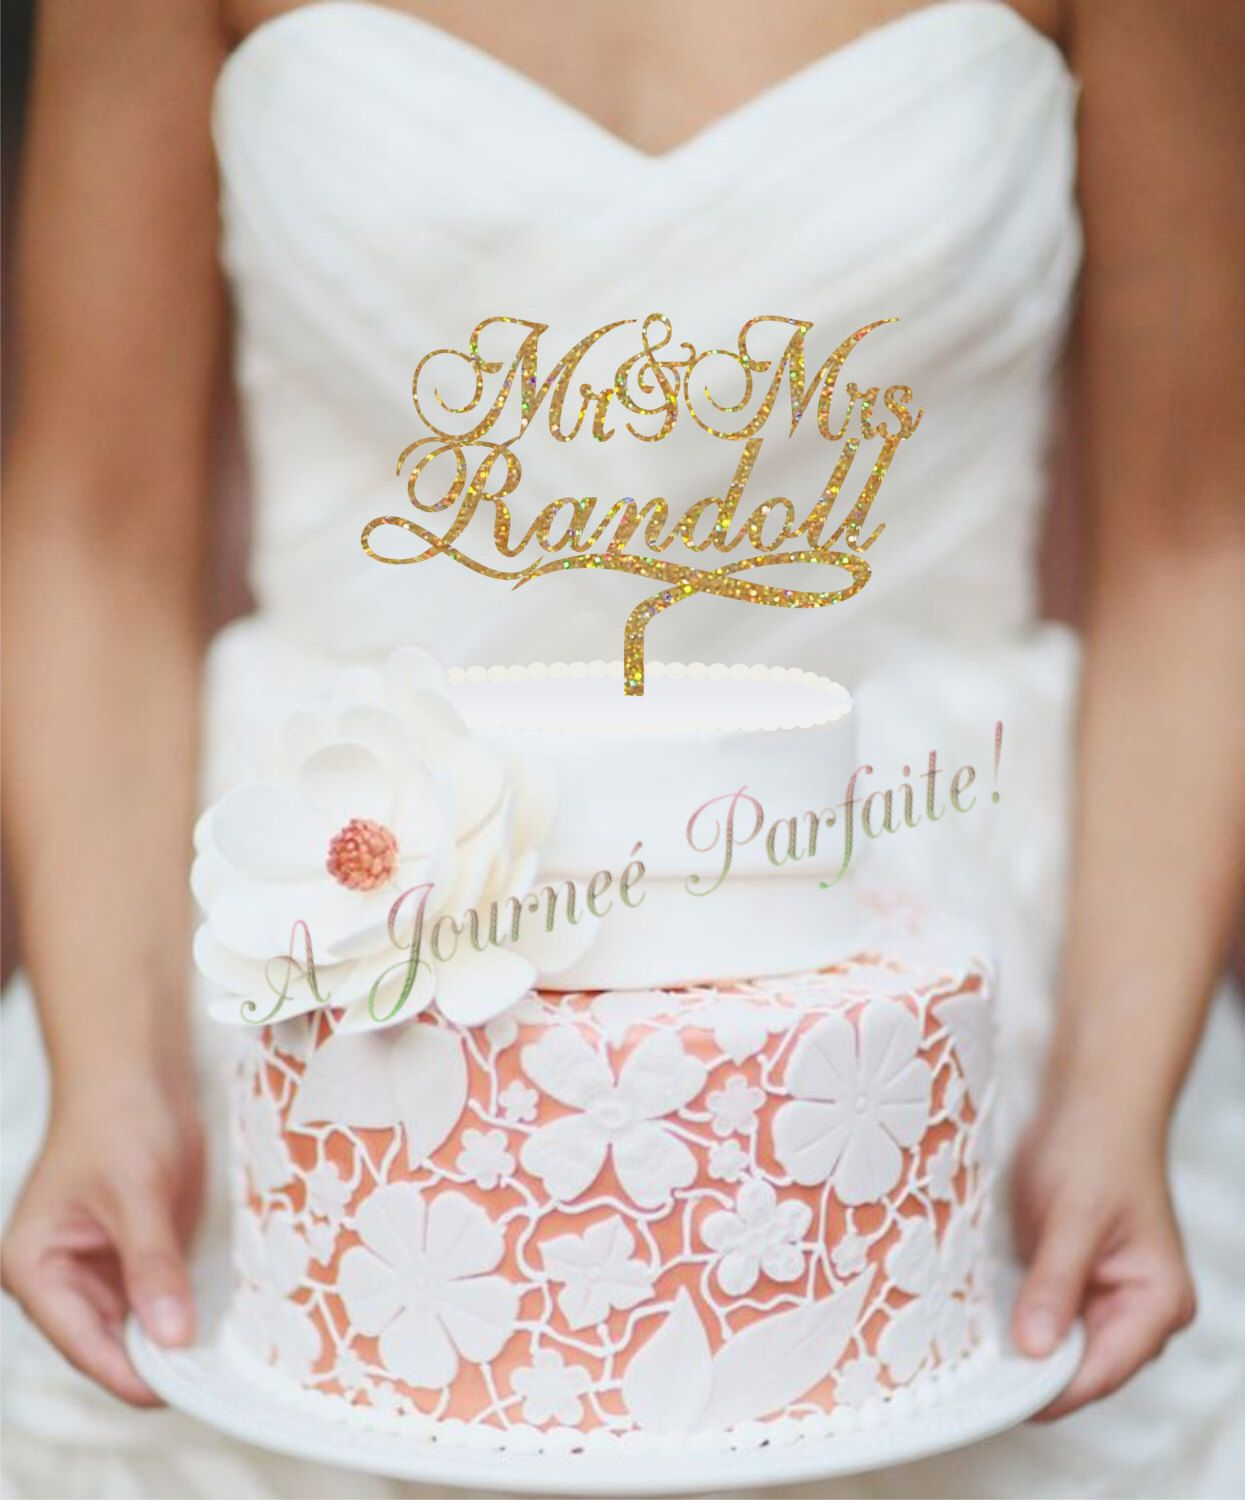 Mr u mrs wedding cake topper personalized with name custom topper